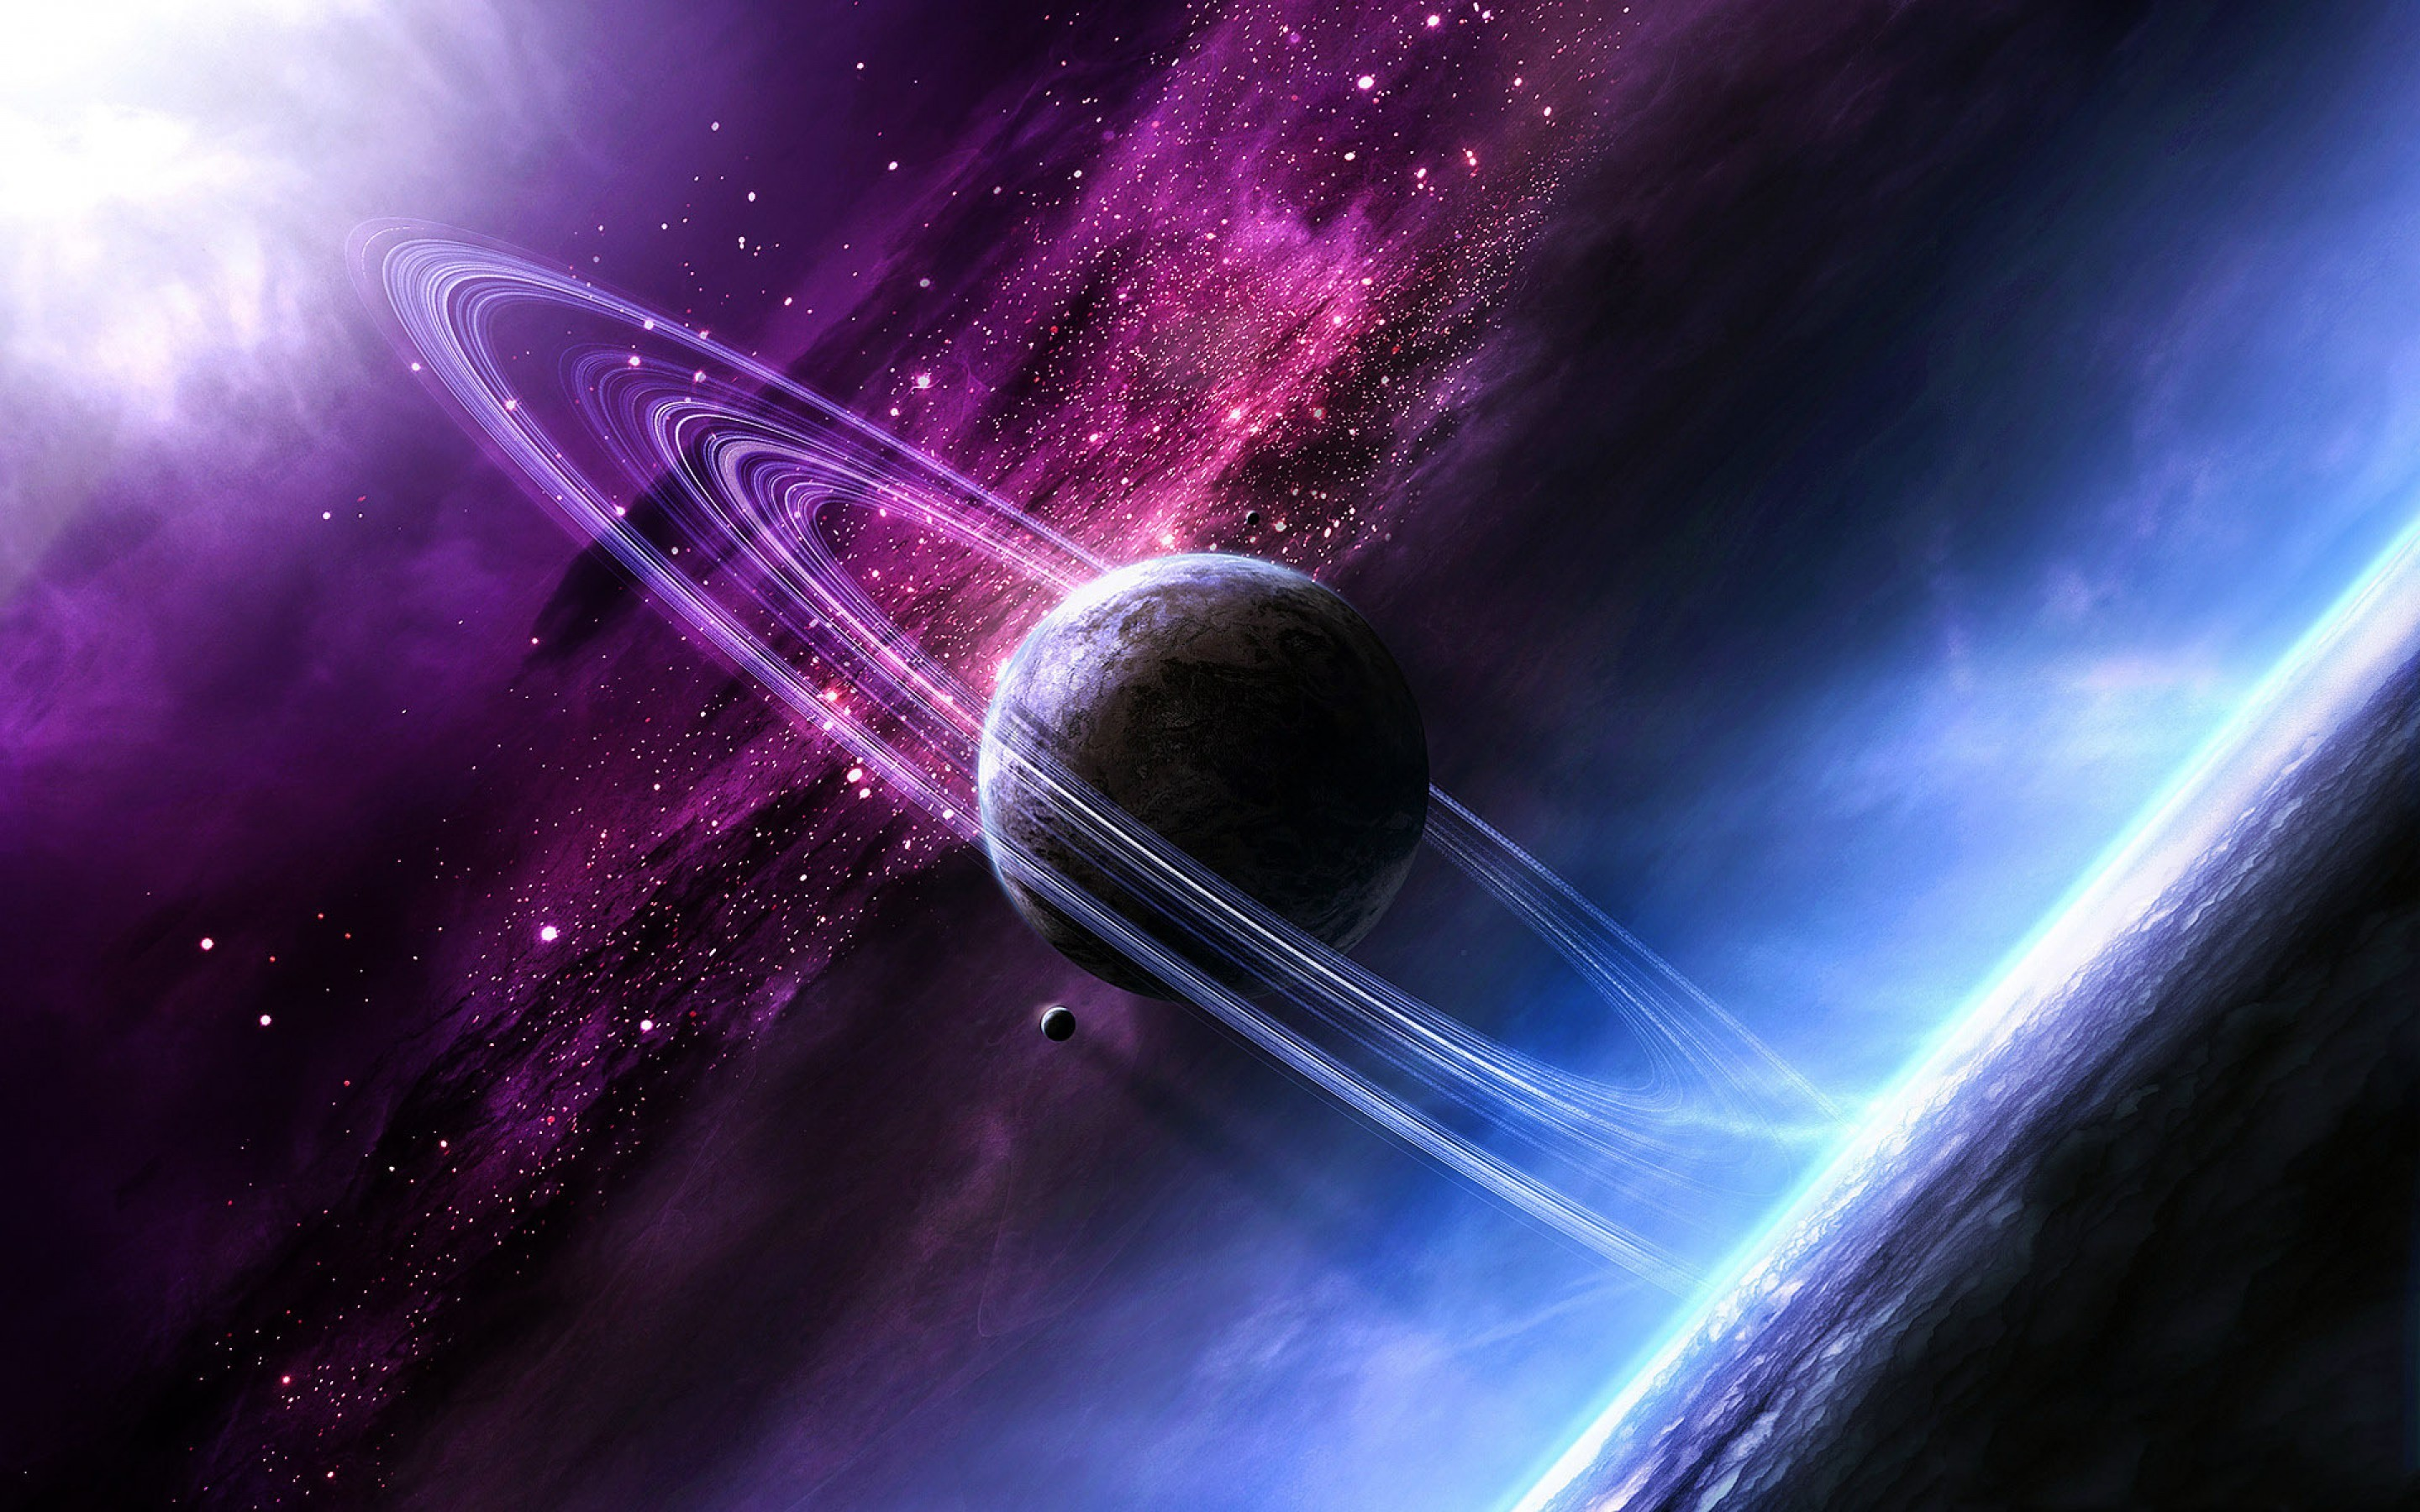 super high resolution space wallpaper (59+ images)